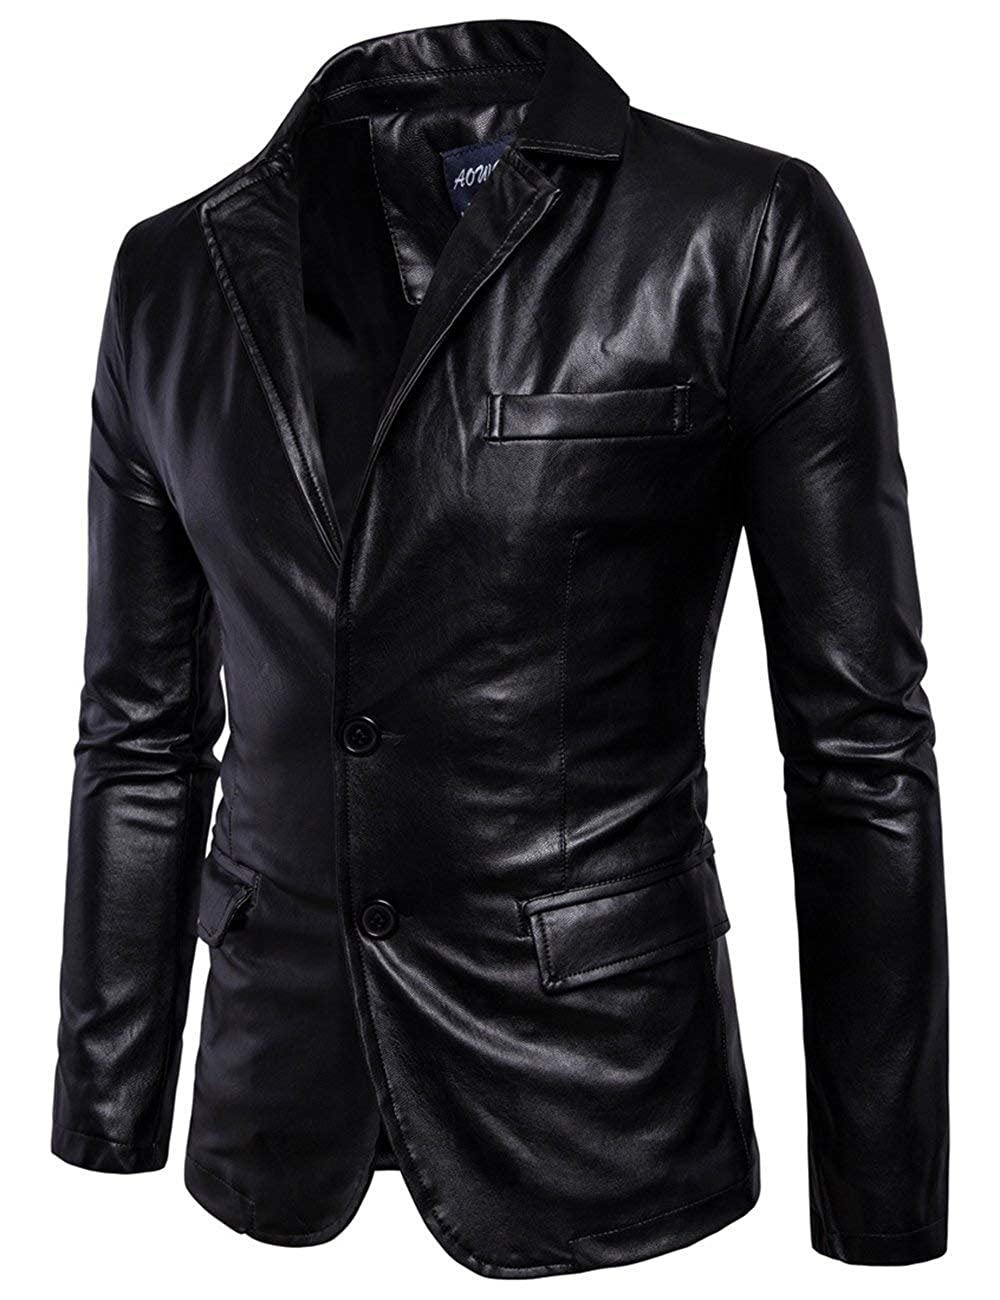 Minghe Mens Fashion PU Leather Blazer Jacket Tailored Collar Two Button Jacket